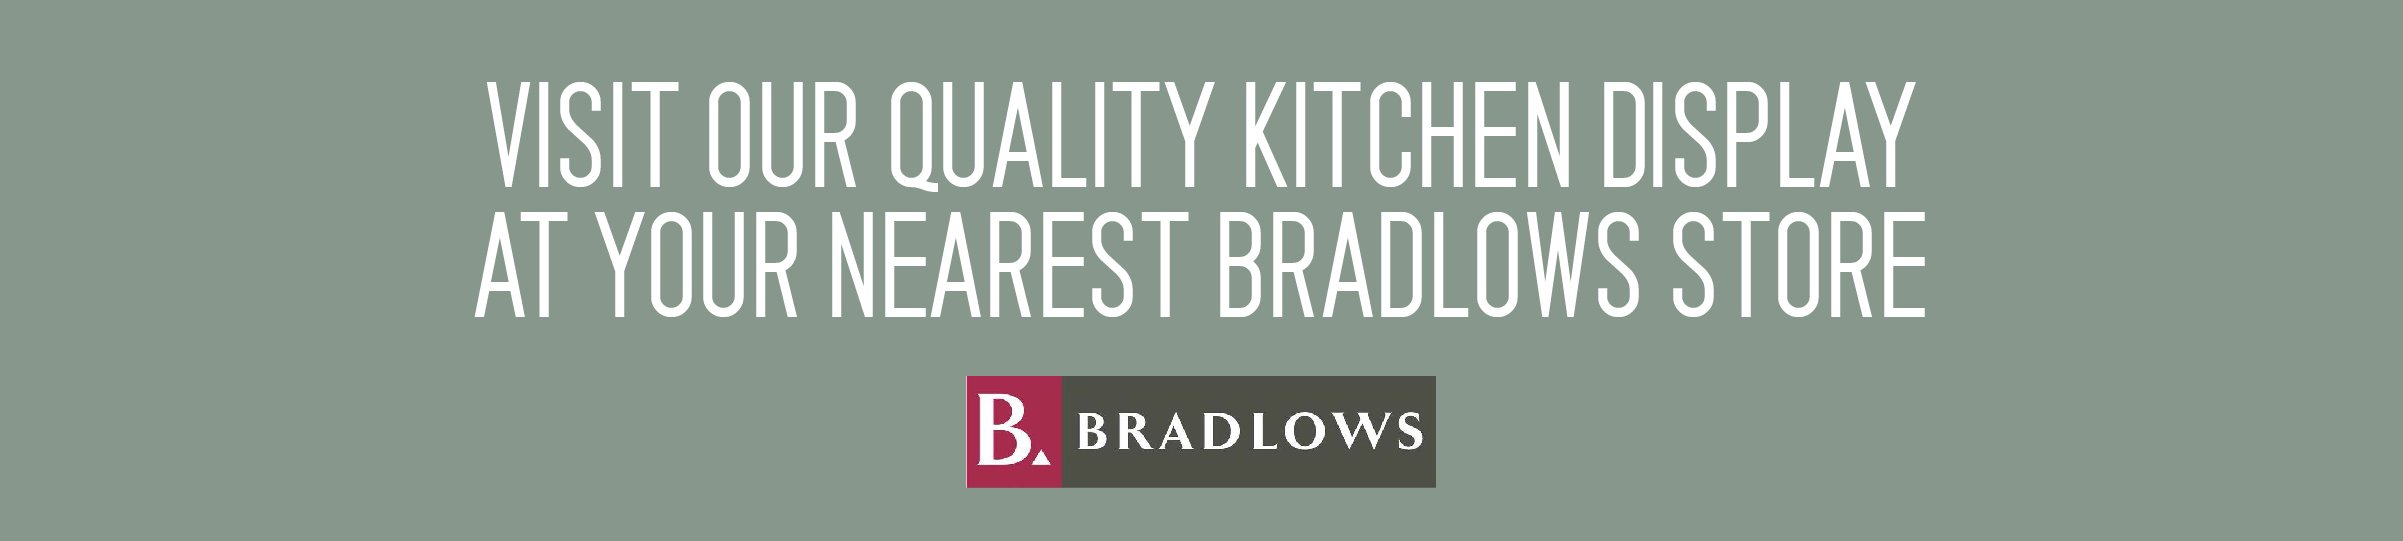 home concept banner showing bradlows logo